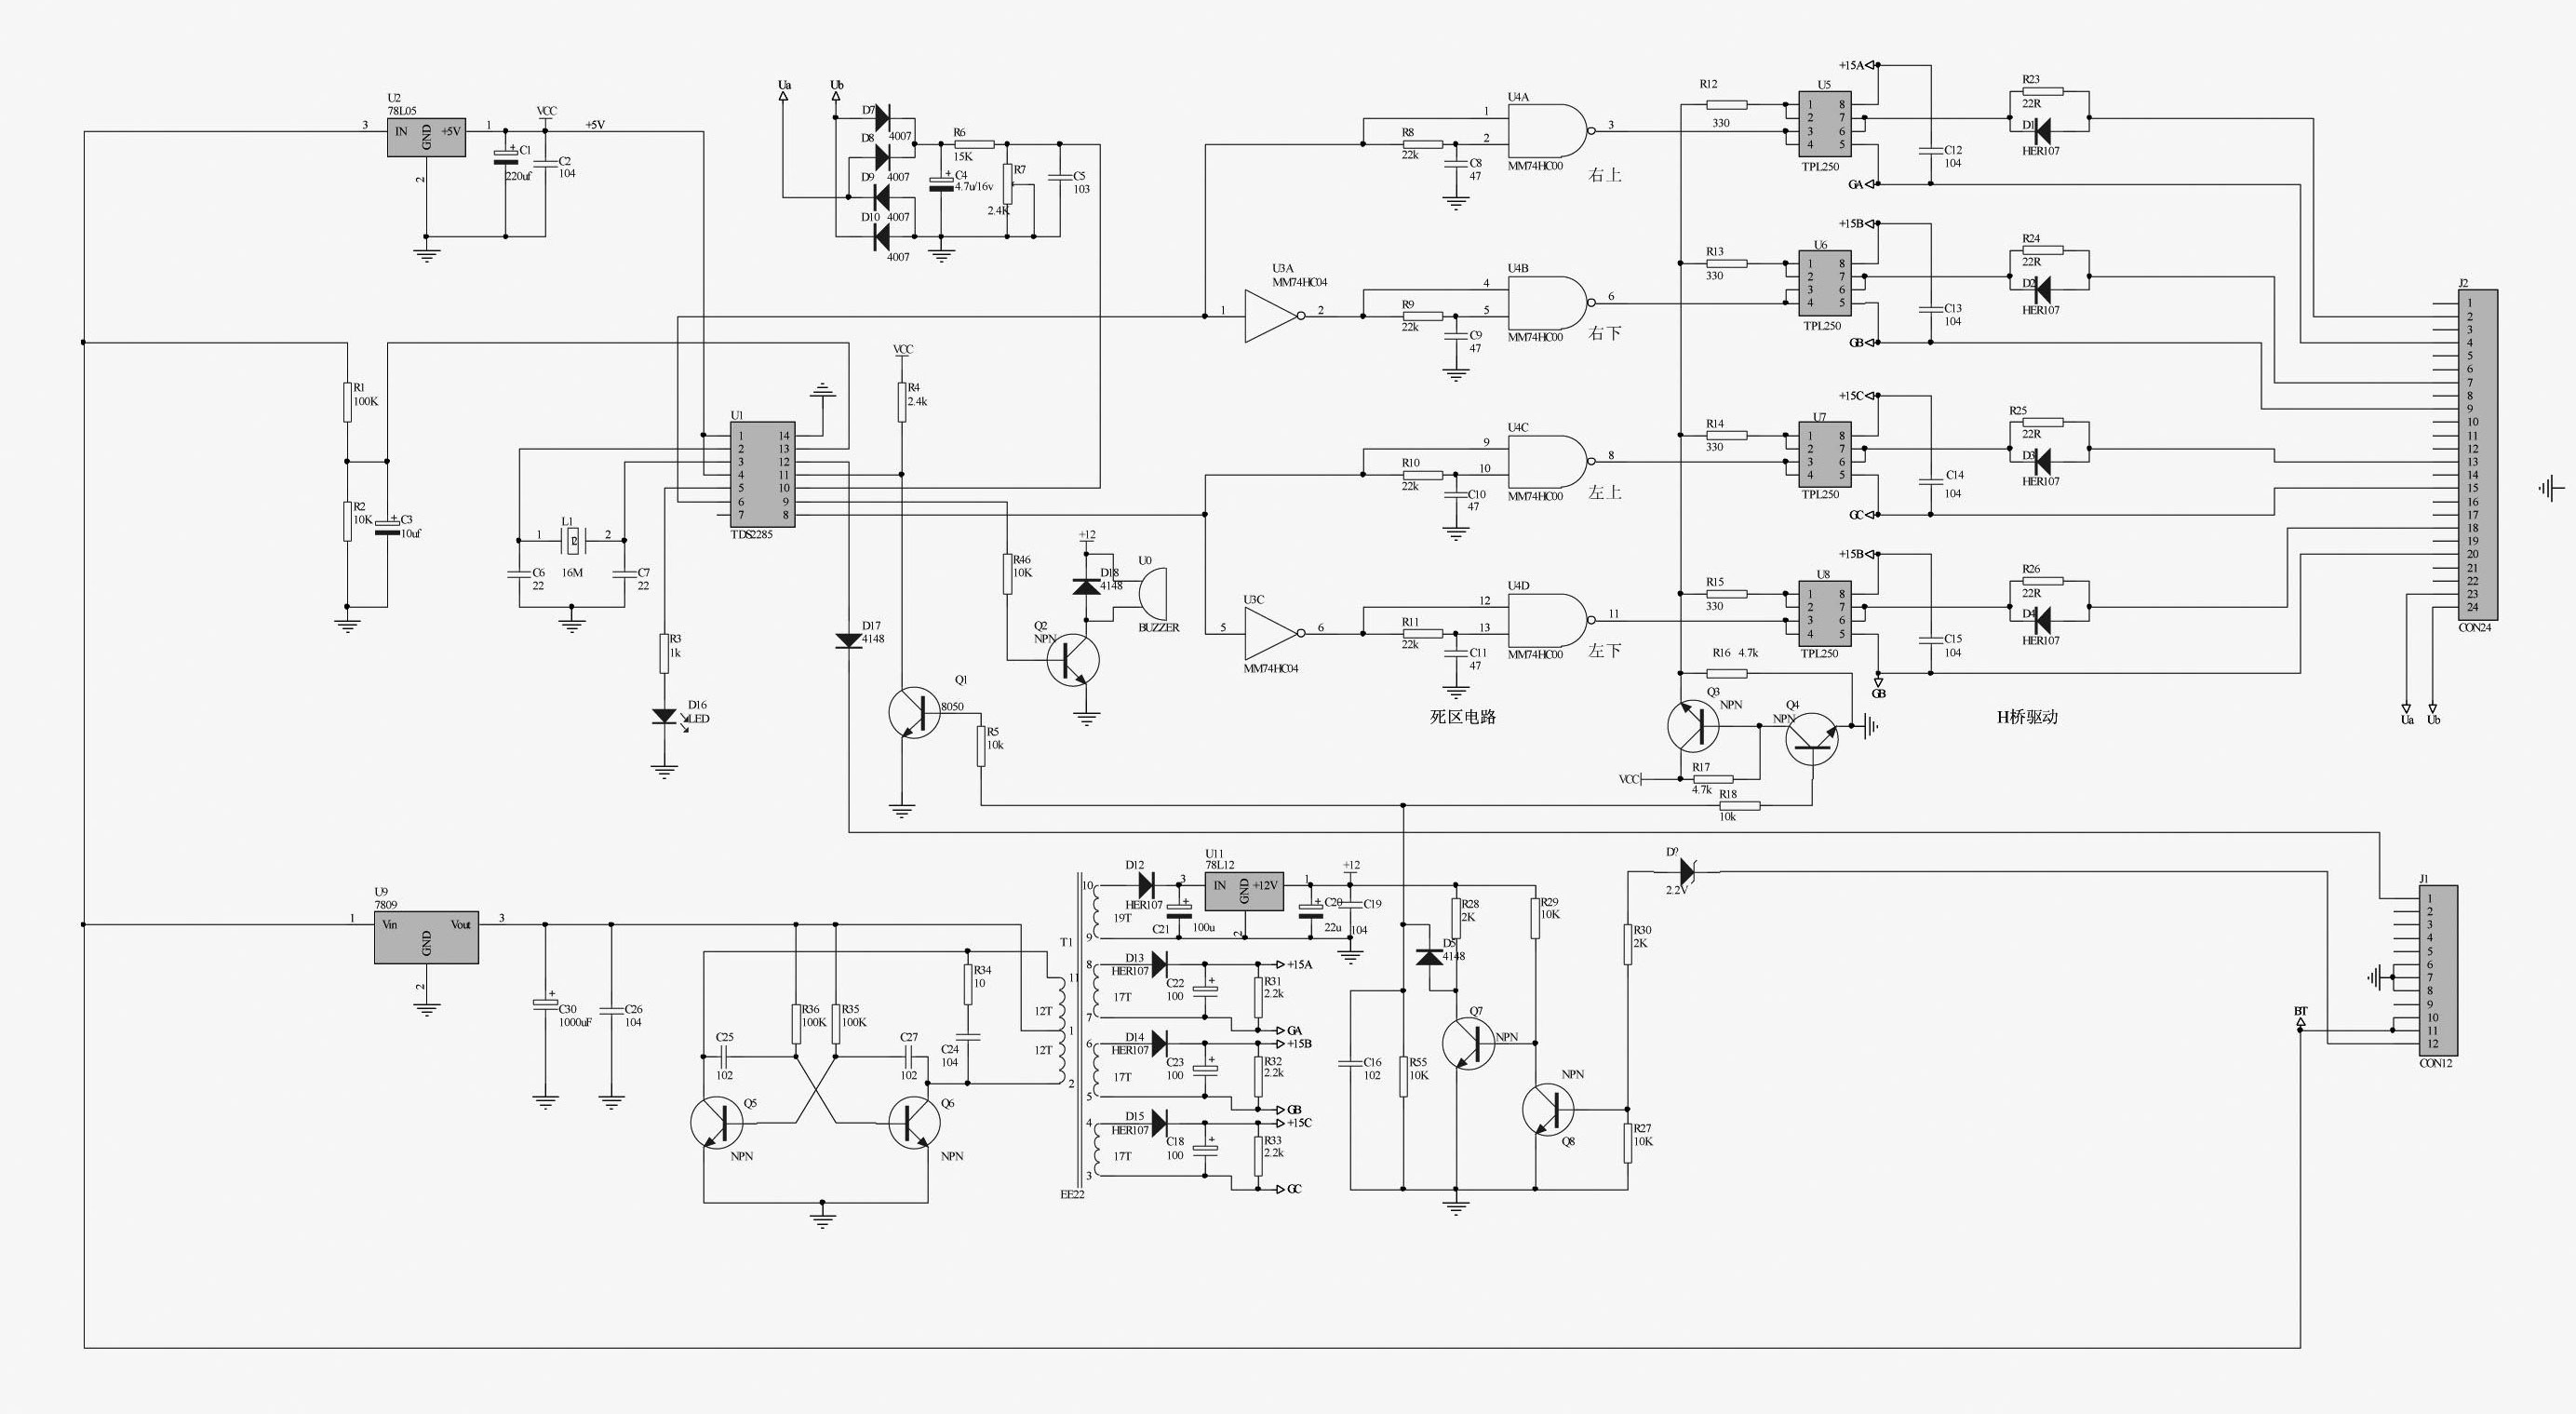 500 w inverter circuit diagram wiring library1000w power inverter spwm driven circuit diagram